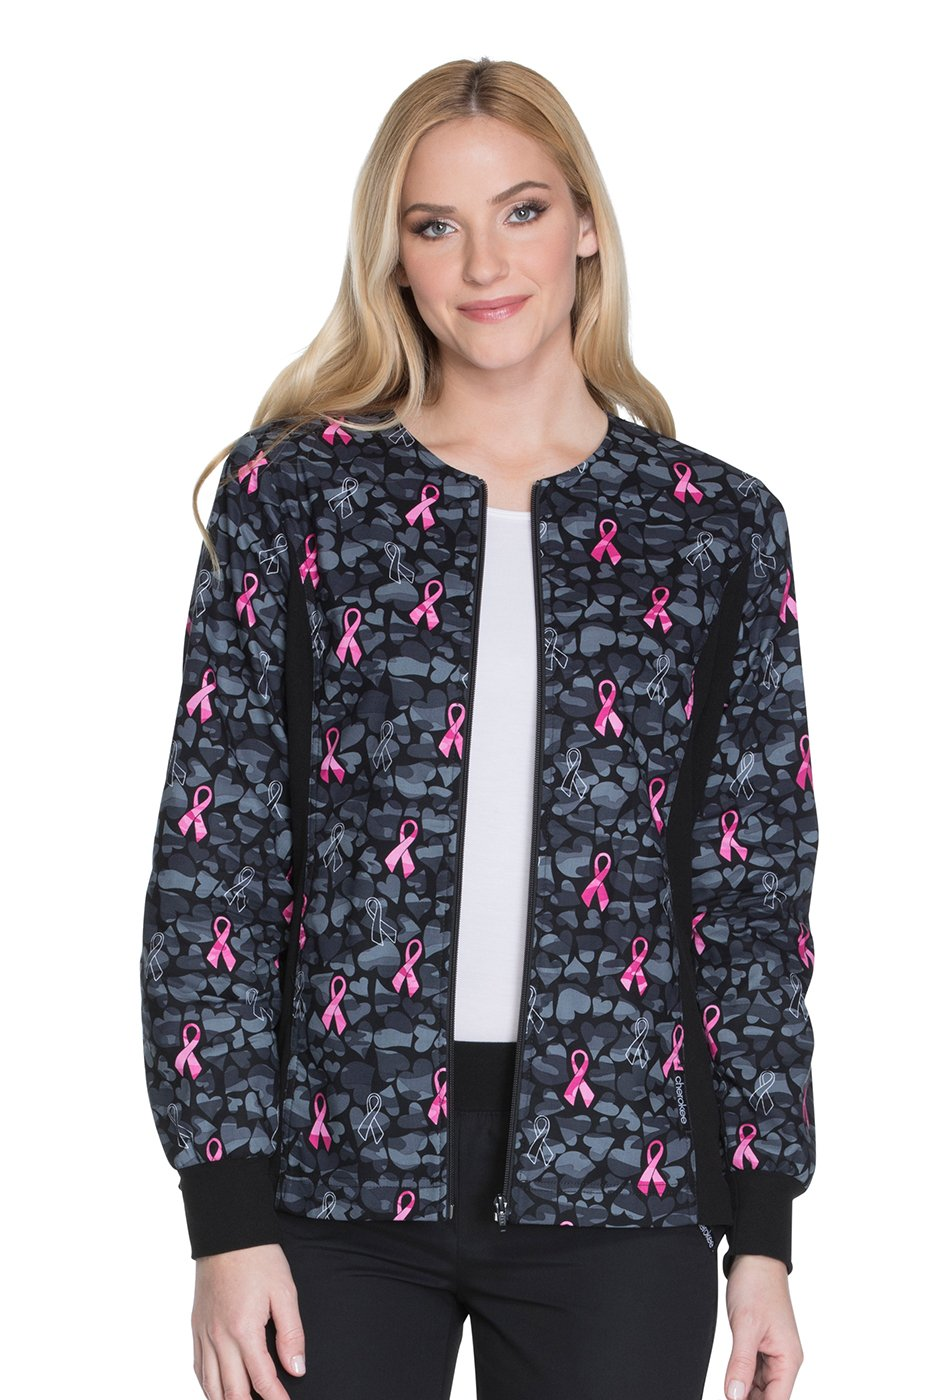 Cherokee Flexibles Women's Zip Up Heart Print Scrub Jacket Medium Print